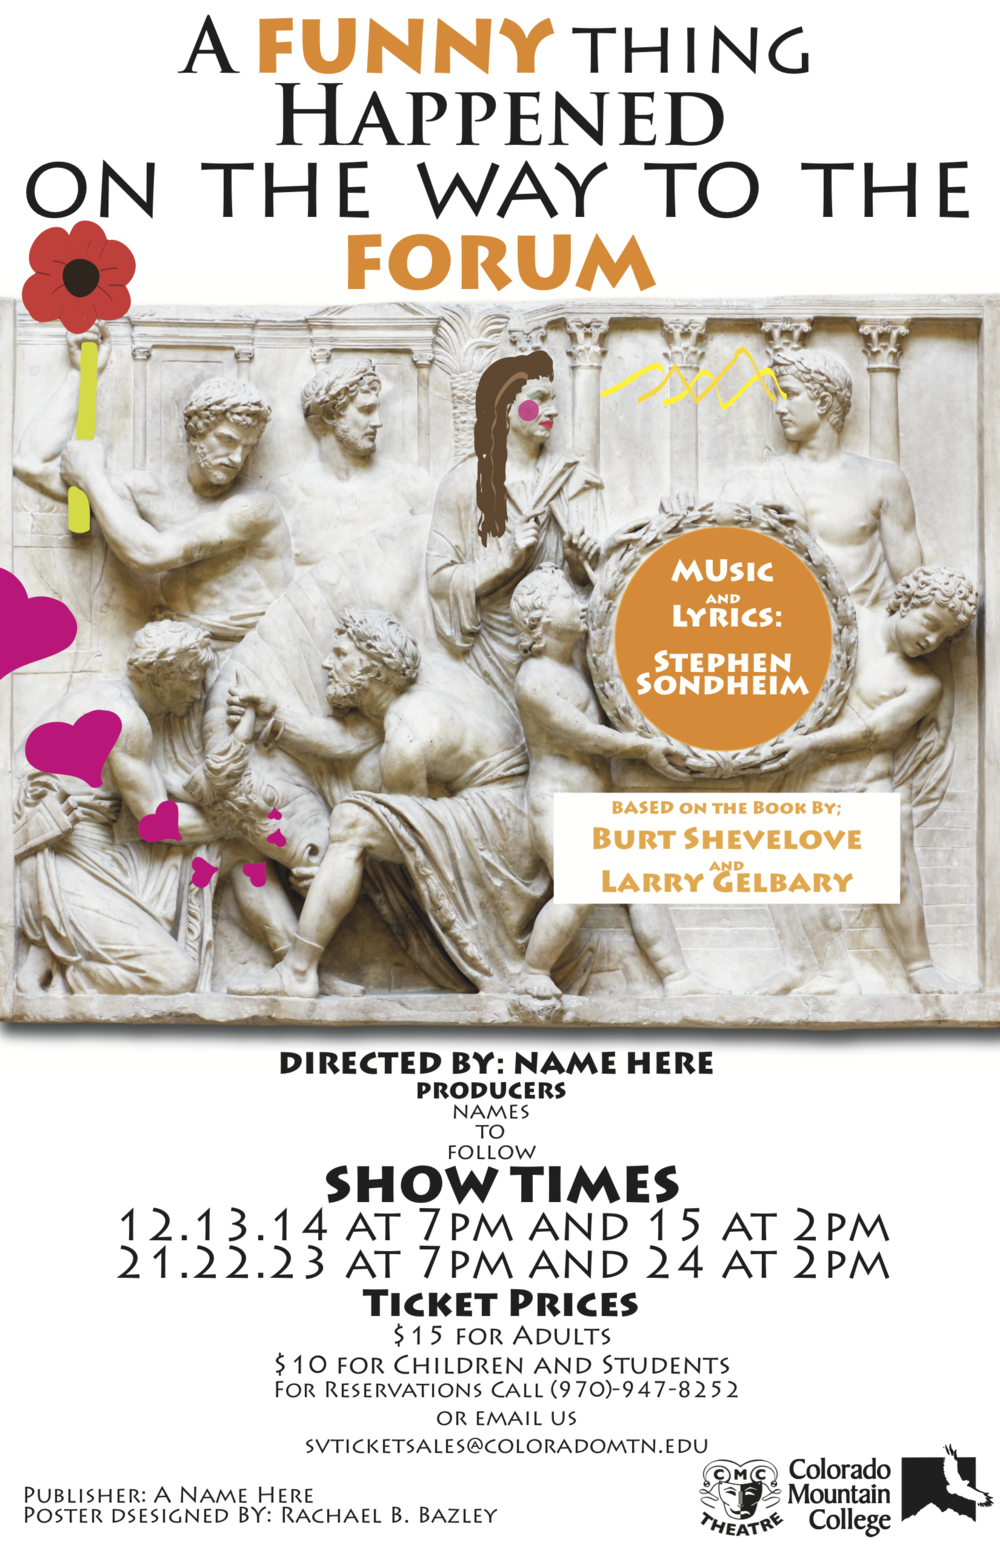 Published Poster for CMC's production